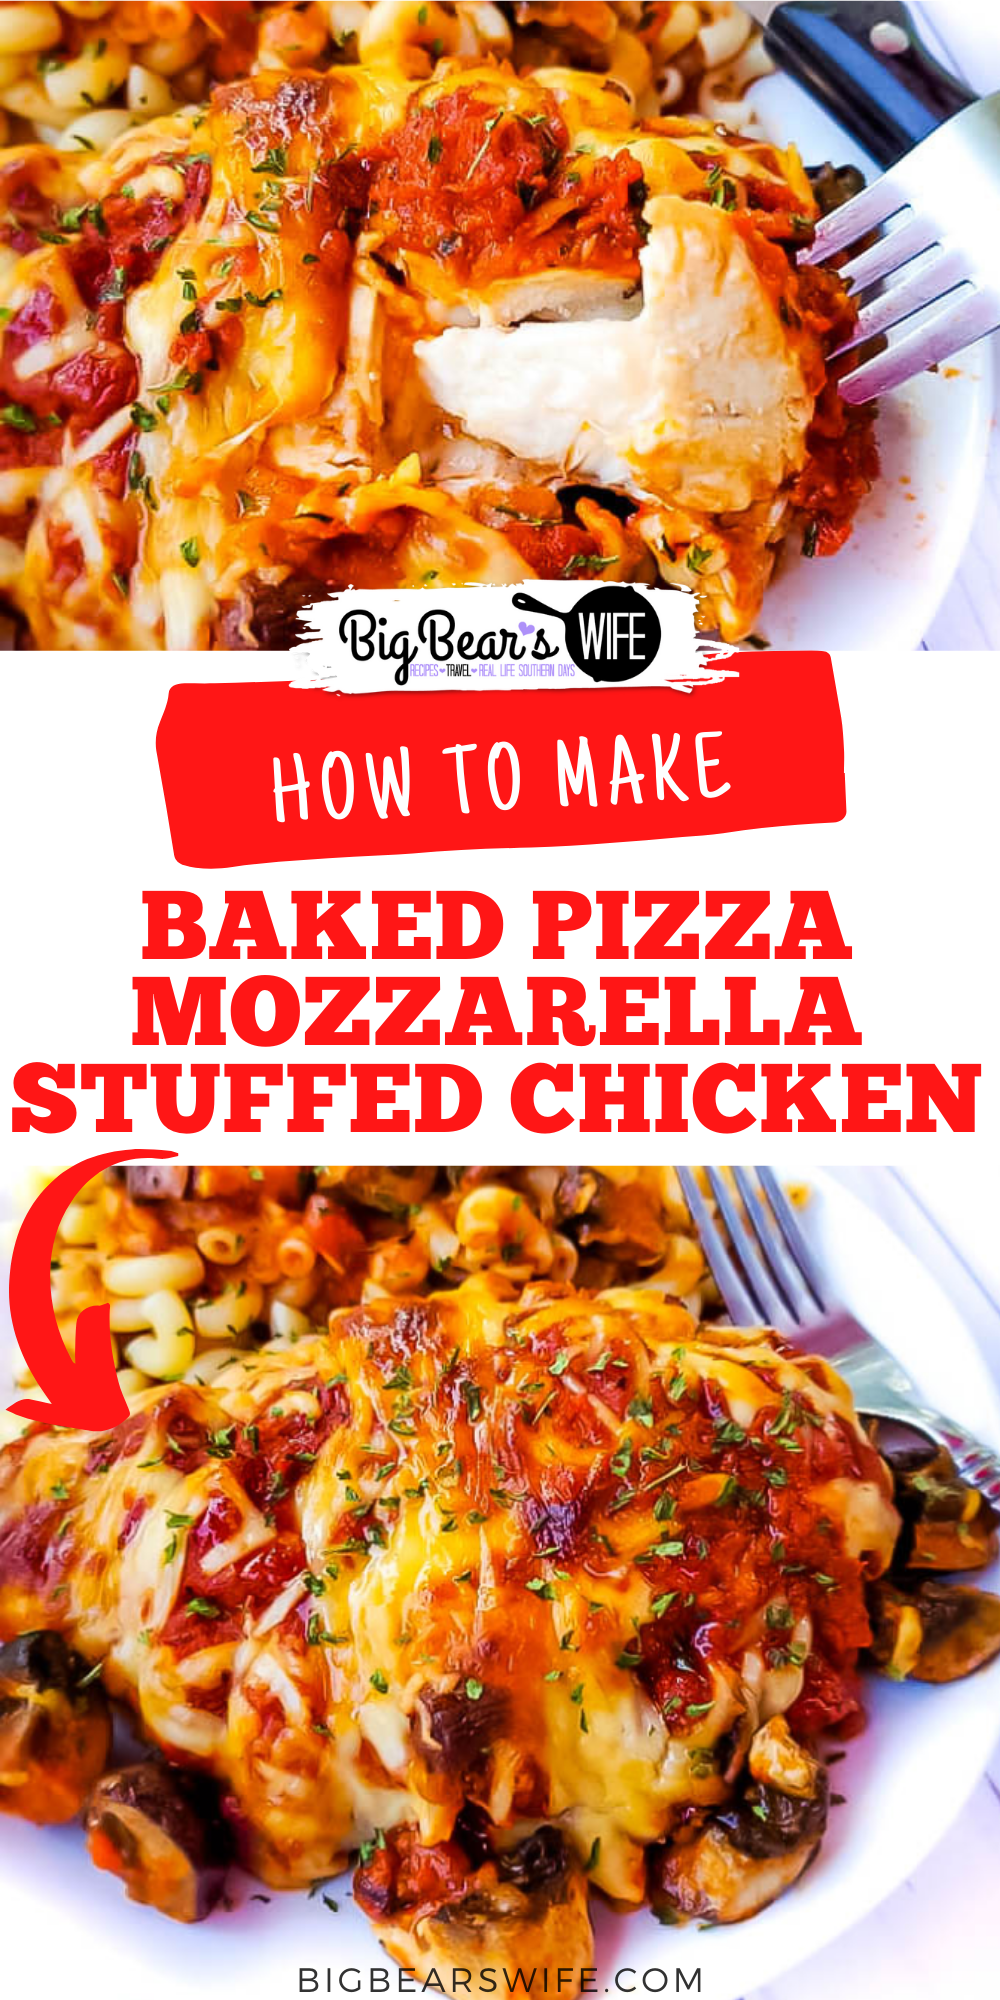 This Baked Pizza Mozzarella Stuffed Chicken is a tasty combination of cheese stuffed chicken and pizza! 